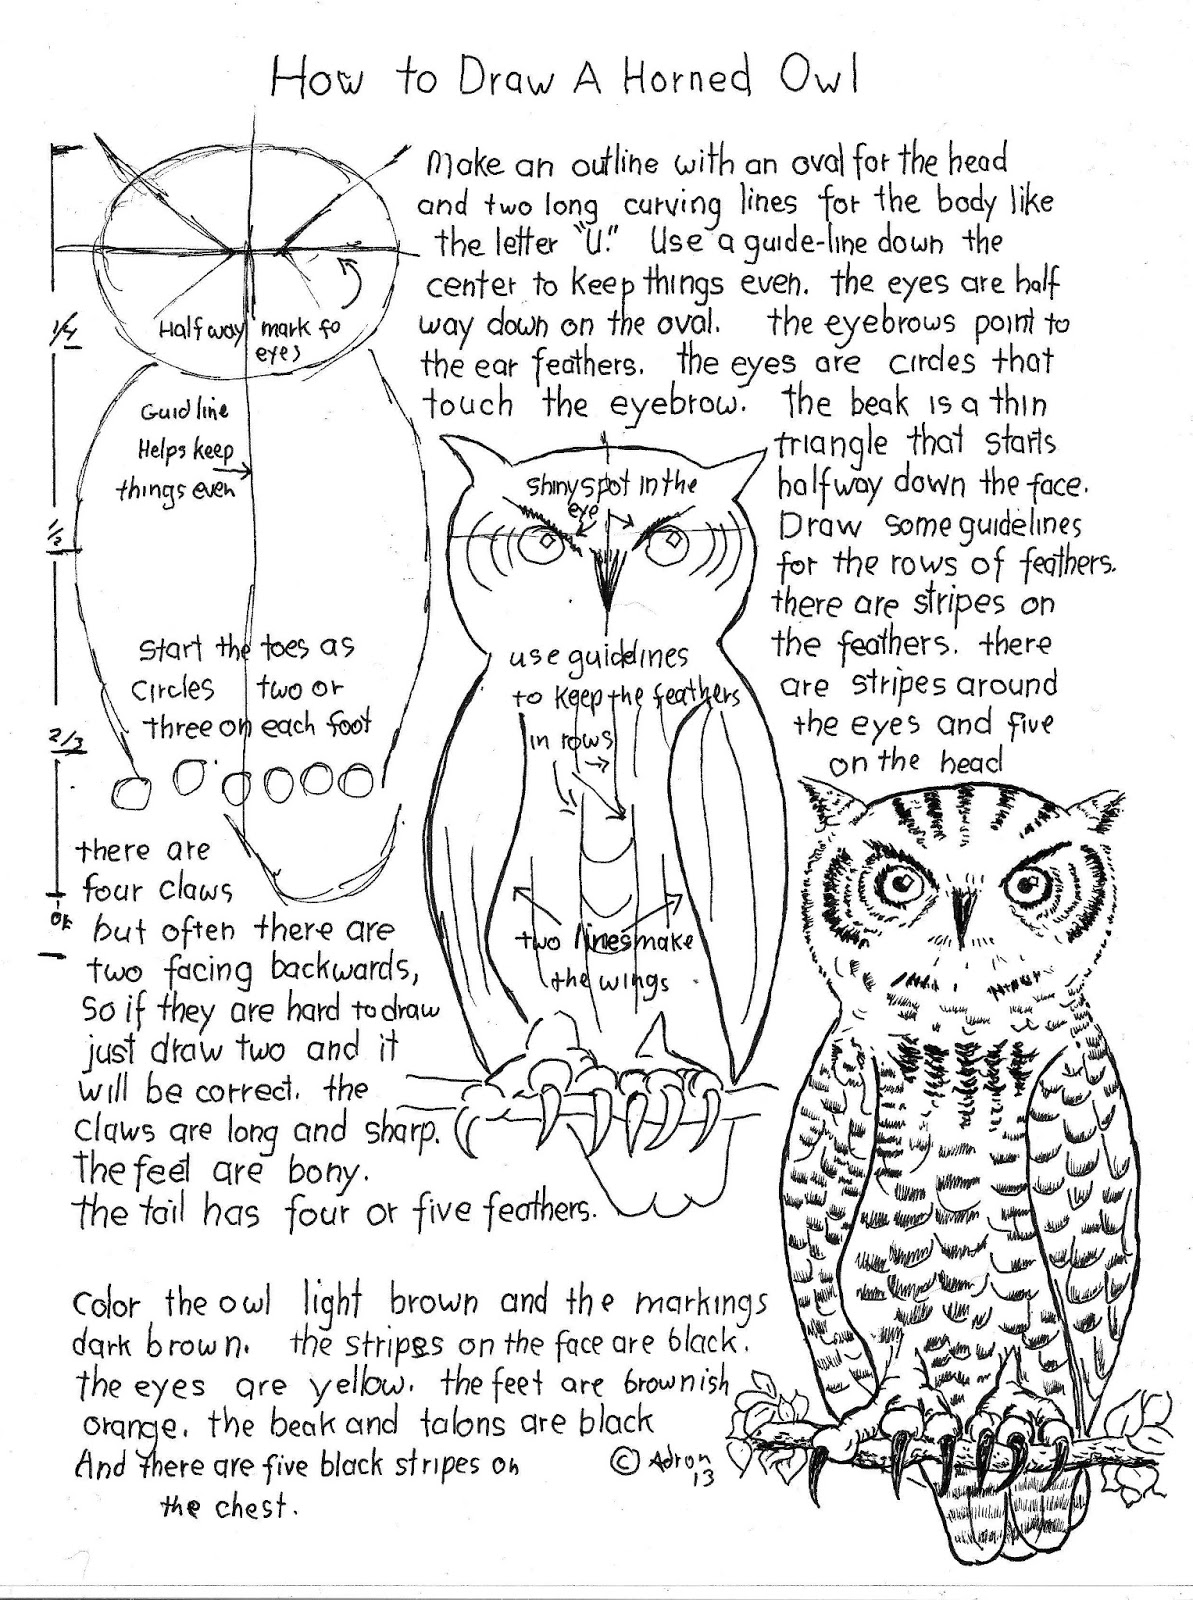 how to draw worksheets for the young artist how to draw a horned owl worksheet and lesson. Black Bedroom Furniture Sets. Home Design Ideas